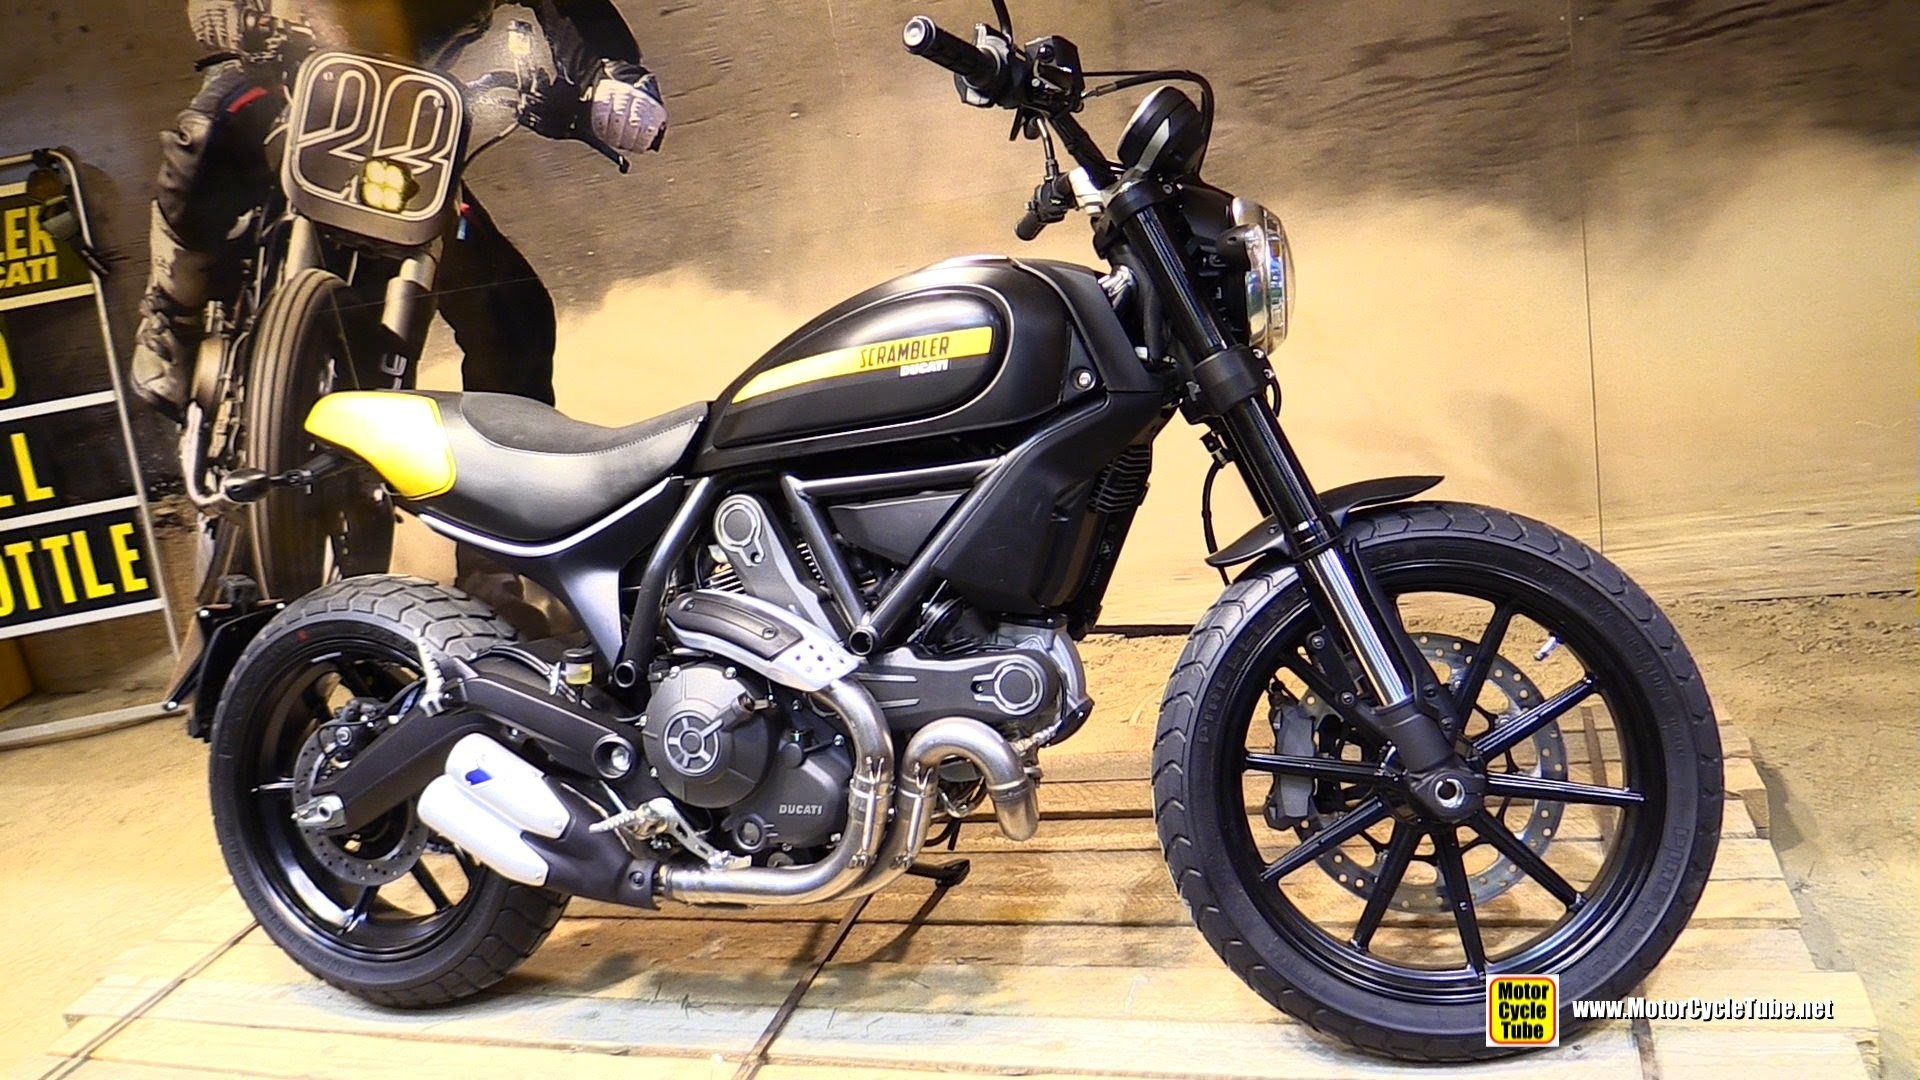 1920x1080 2015 Ducati Scrambler Full Throttle - Walkaround - 2014 EICMA Milan  Motorcycle Exhibition - YouTube